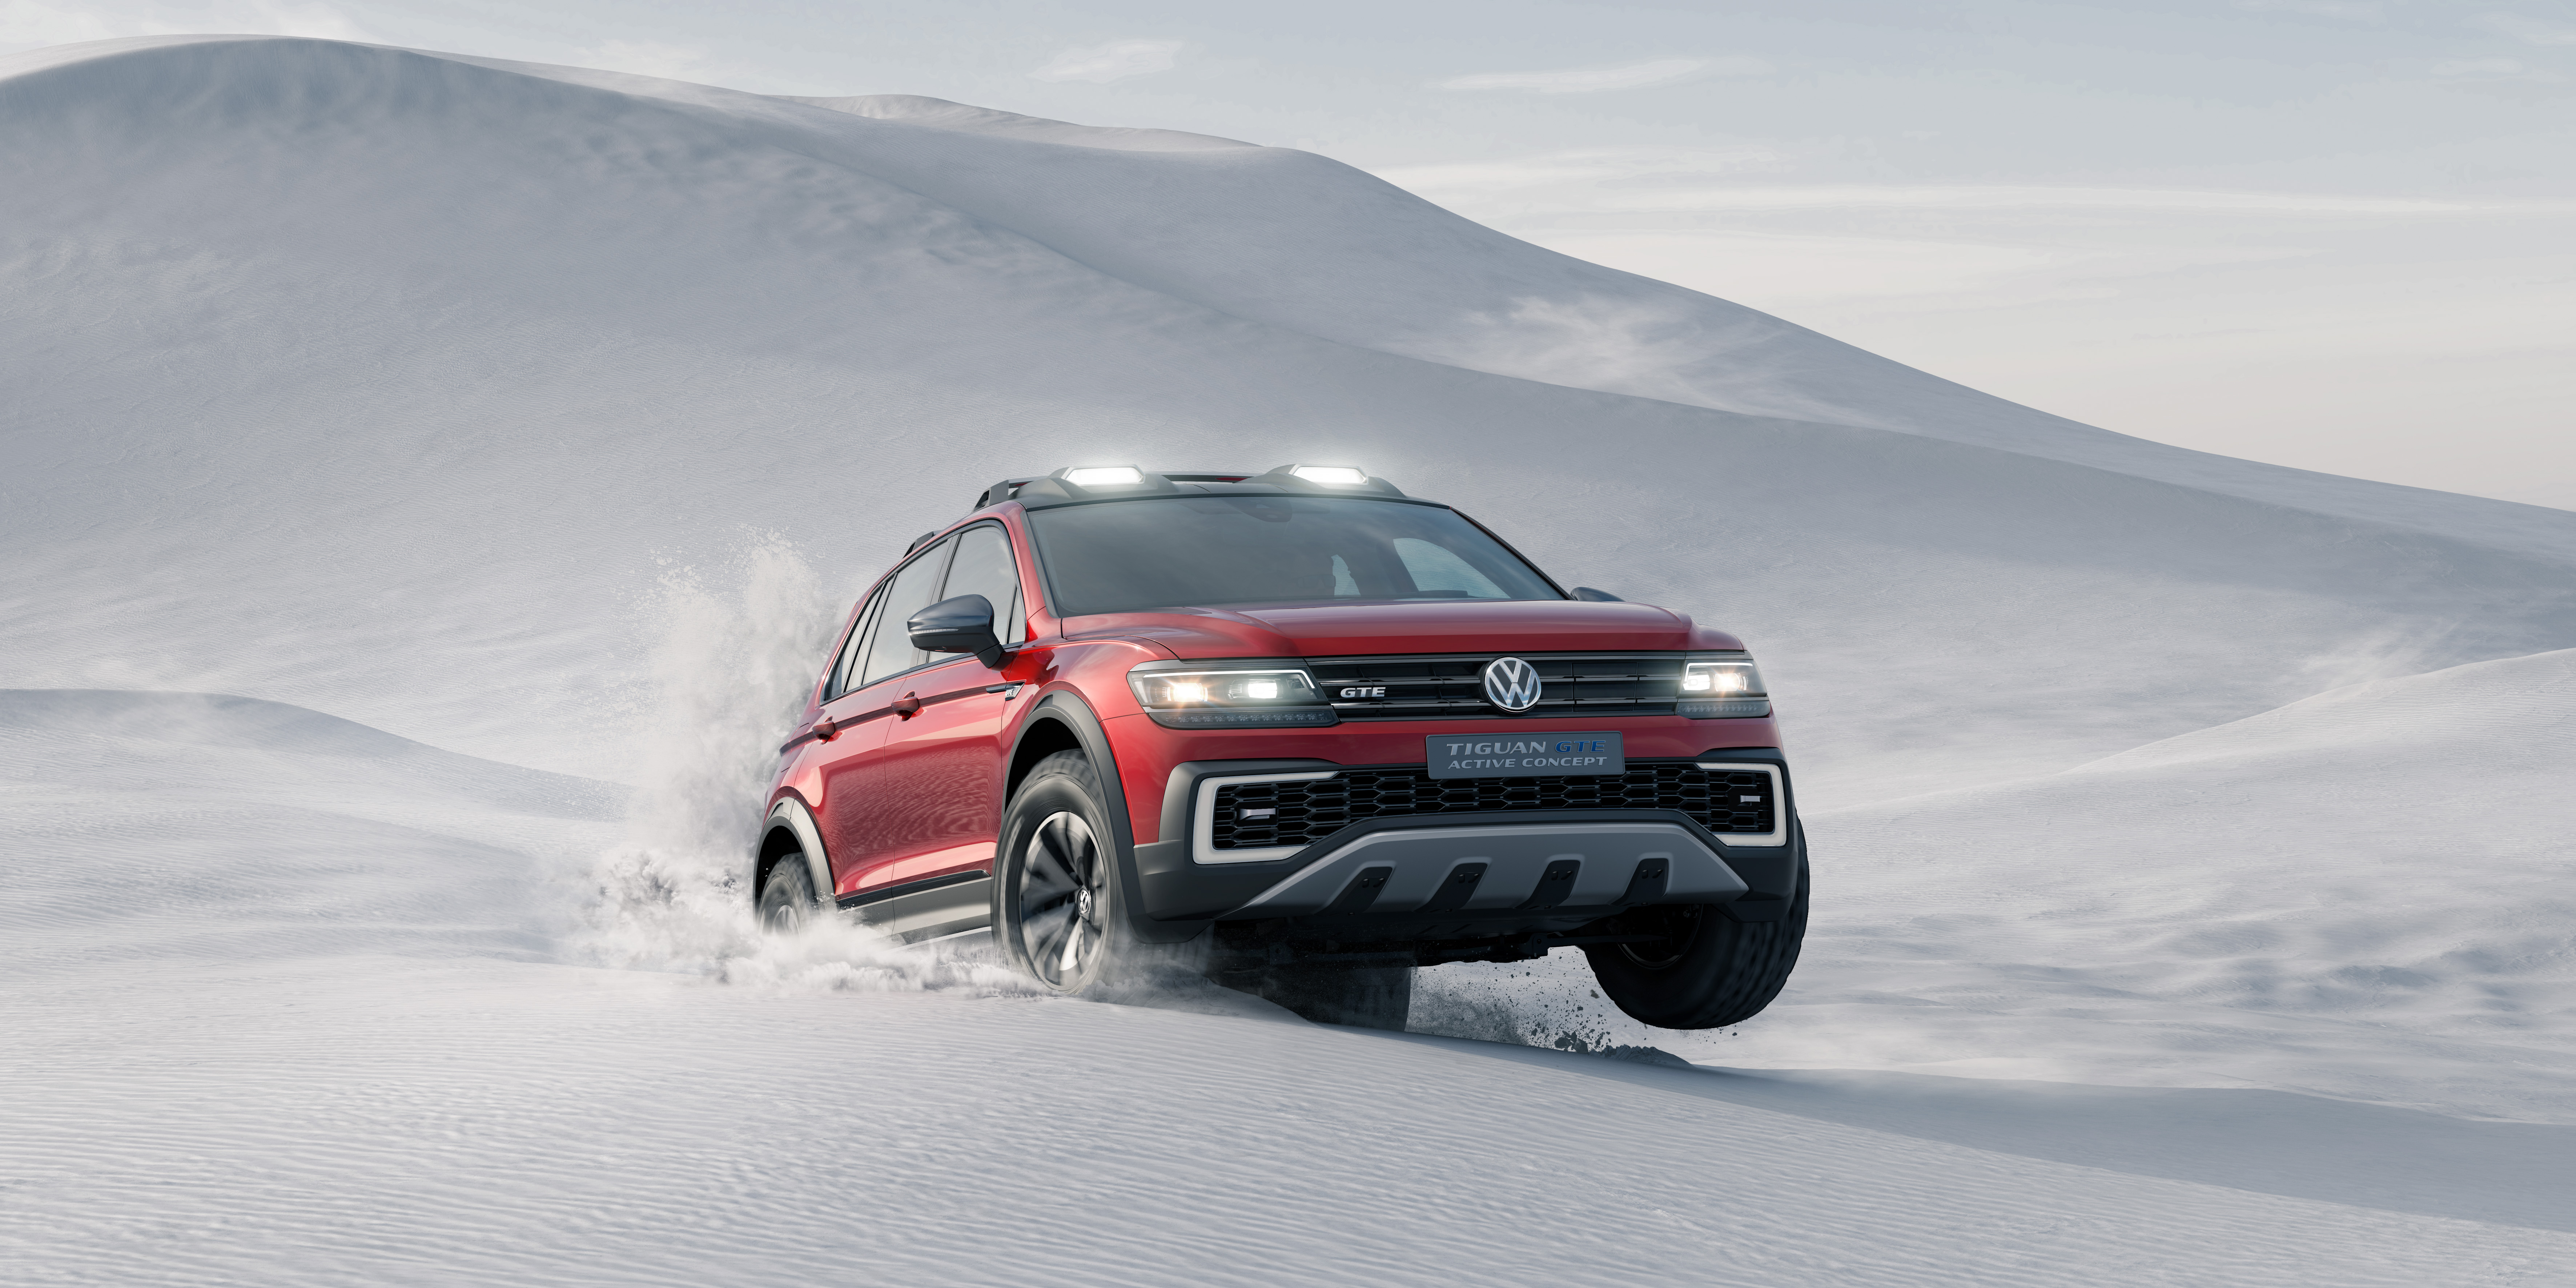 Volkswagen unveiled the Tiguan concept car at the North American International Auto Show in Detroit on Monday.